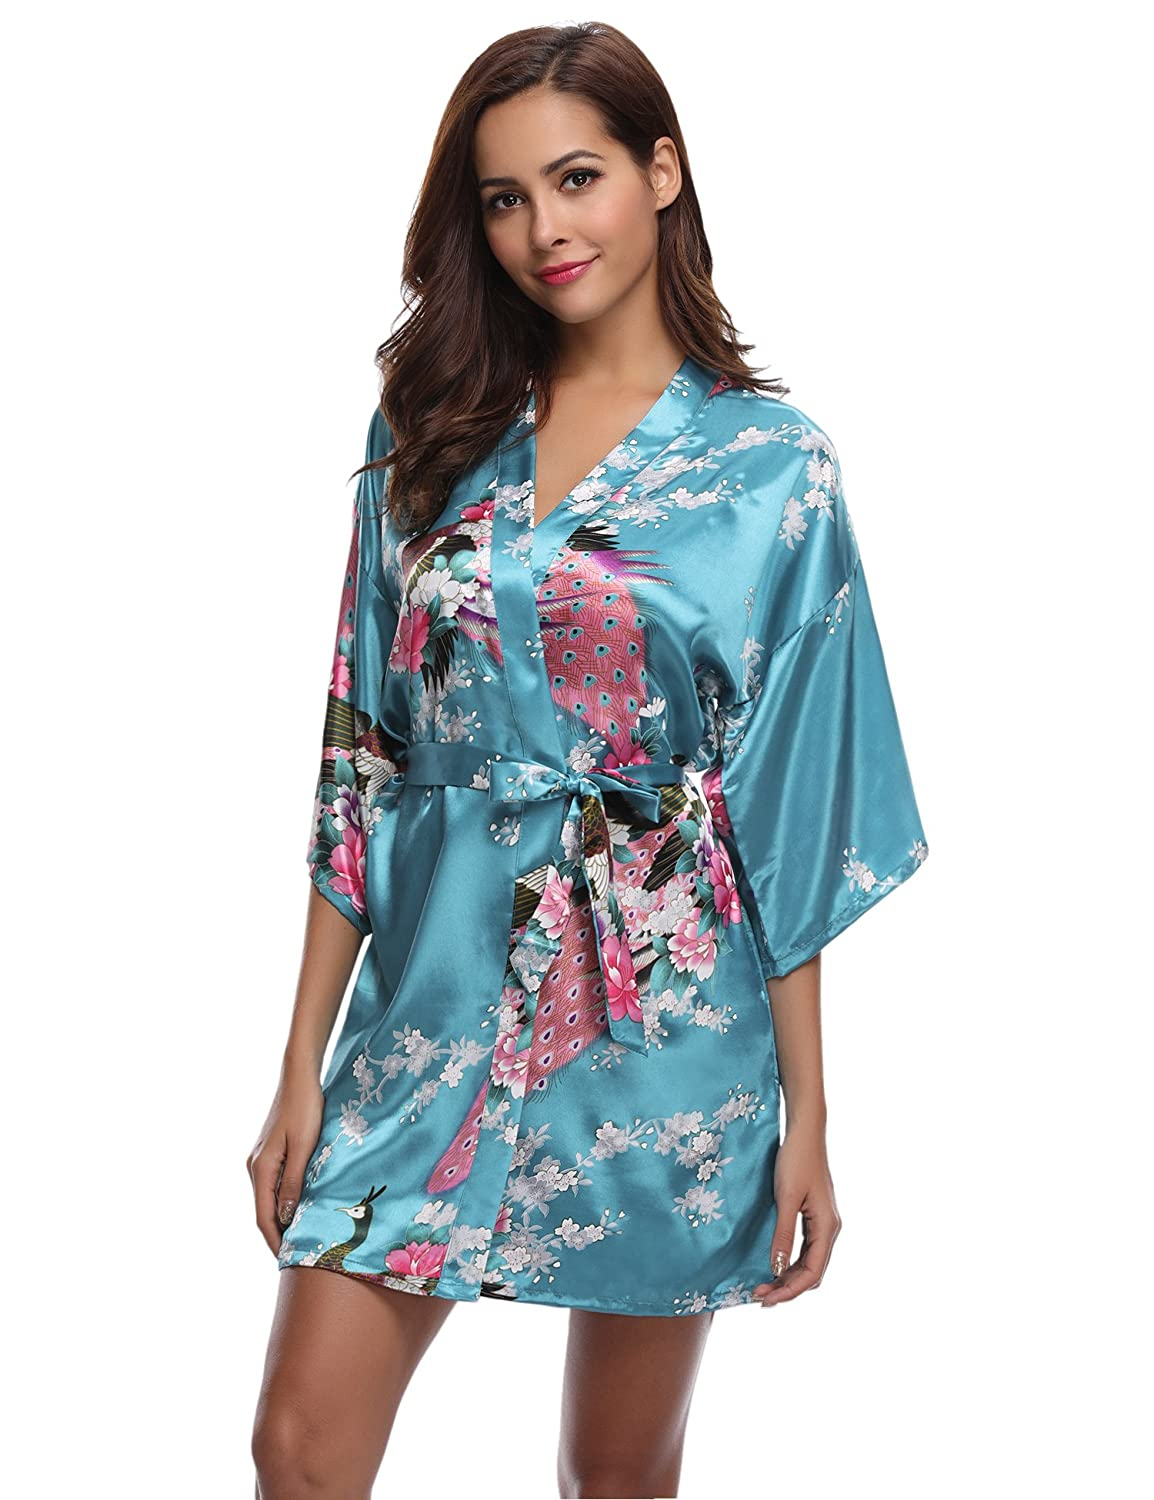 Aibrou Women's Kimono Robes Satin Peacock and Blossoms Silk Nightwear Short Style AM16062402